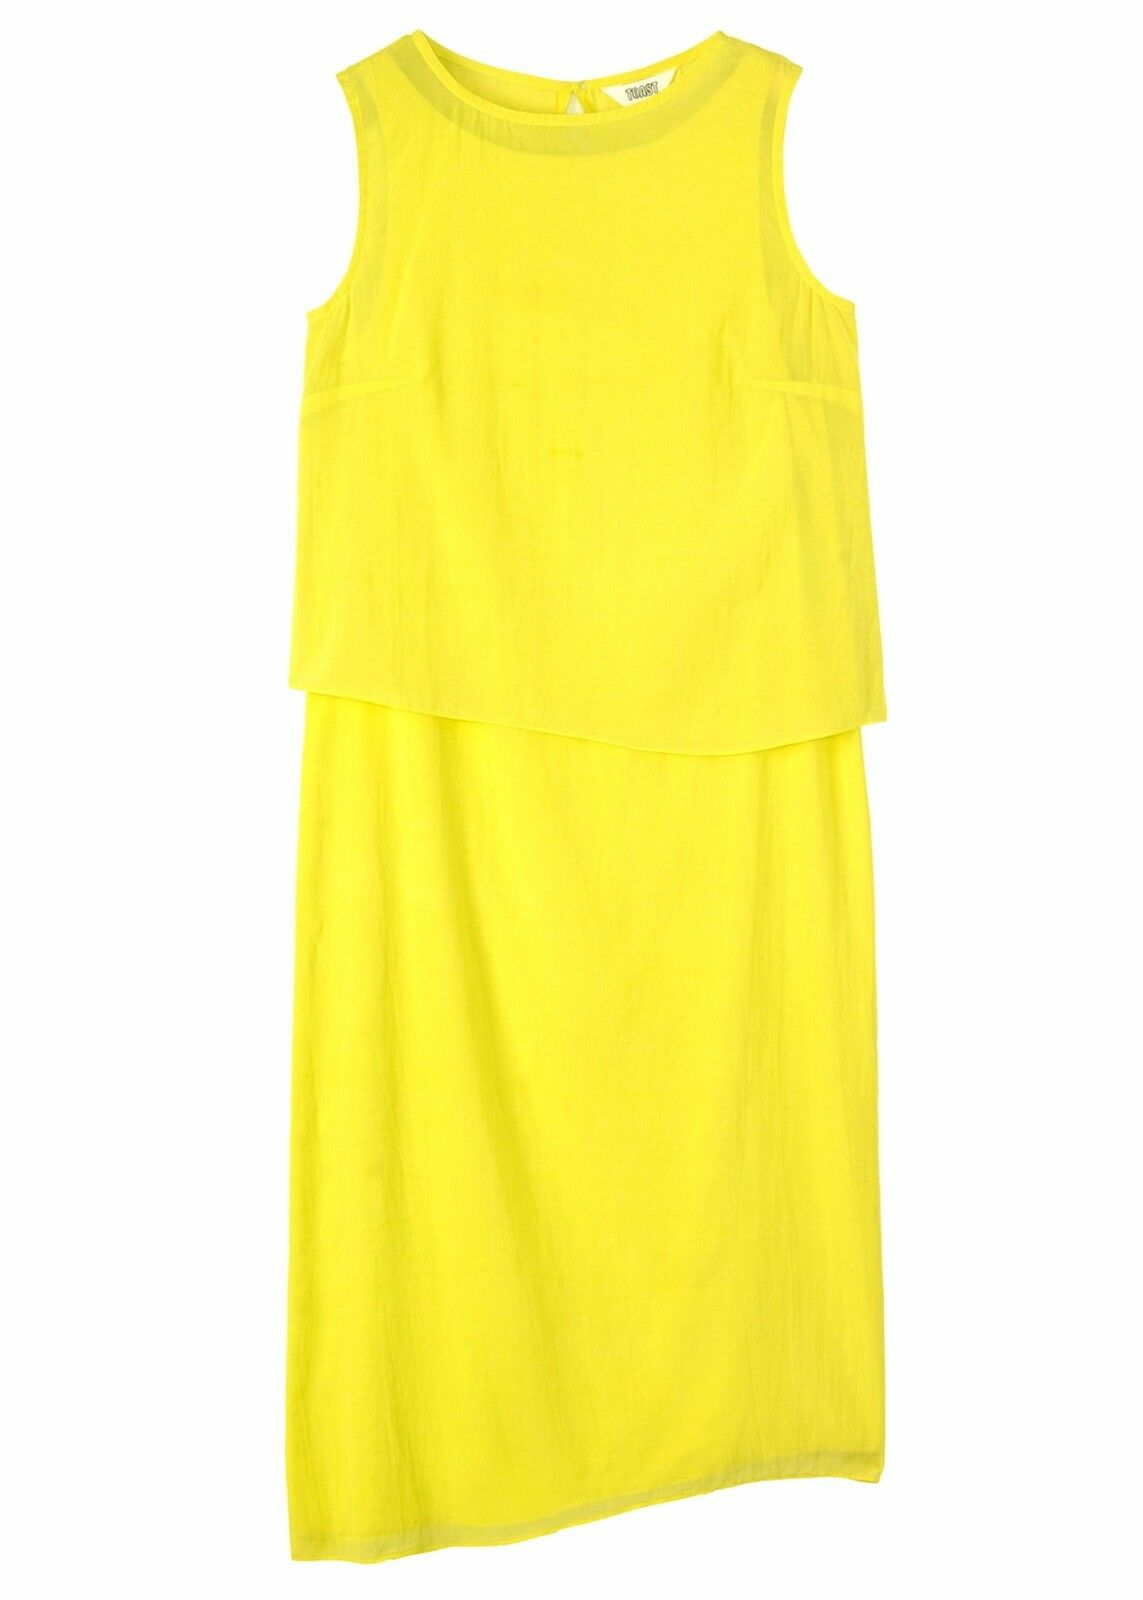 TOAST damen 'FELICE' BRIGHT CITRINE Gelb LAYErot DRESS -UK 8- BNWT - -